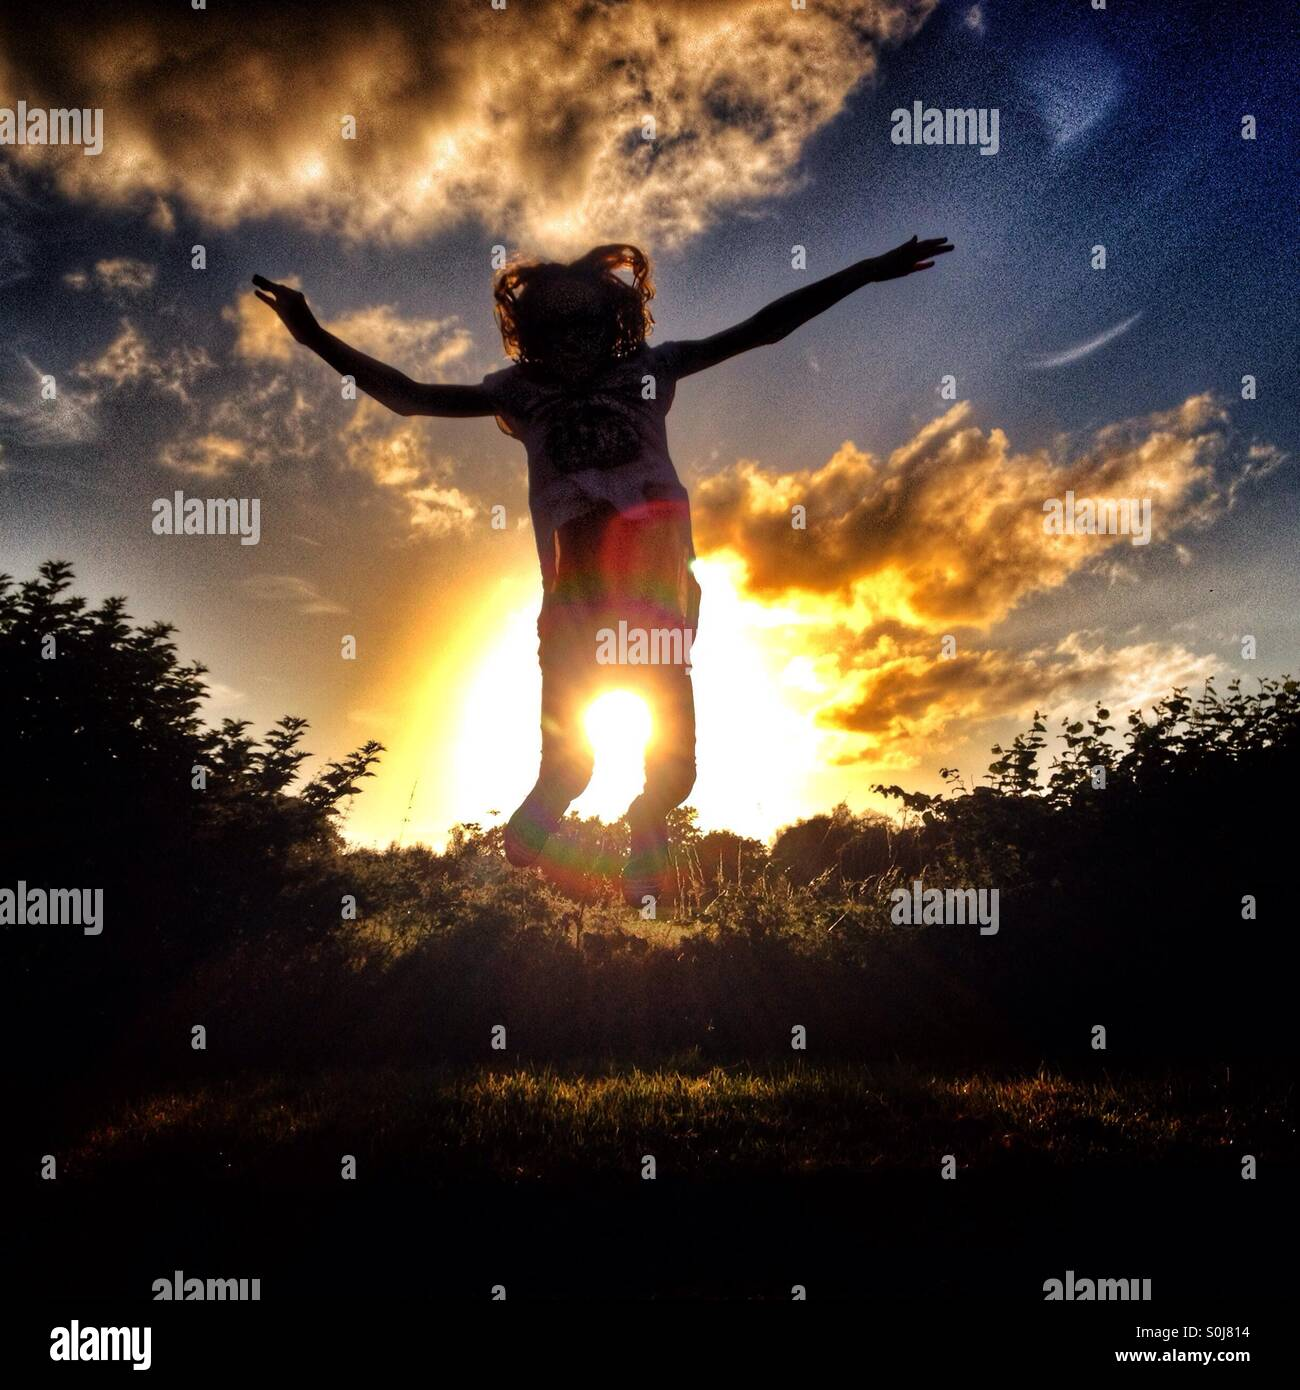 Young girl jumping for joy in silhouette against setting sun - Stock Image